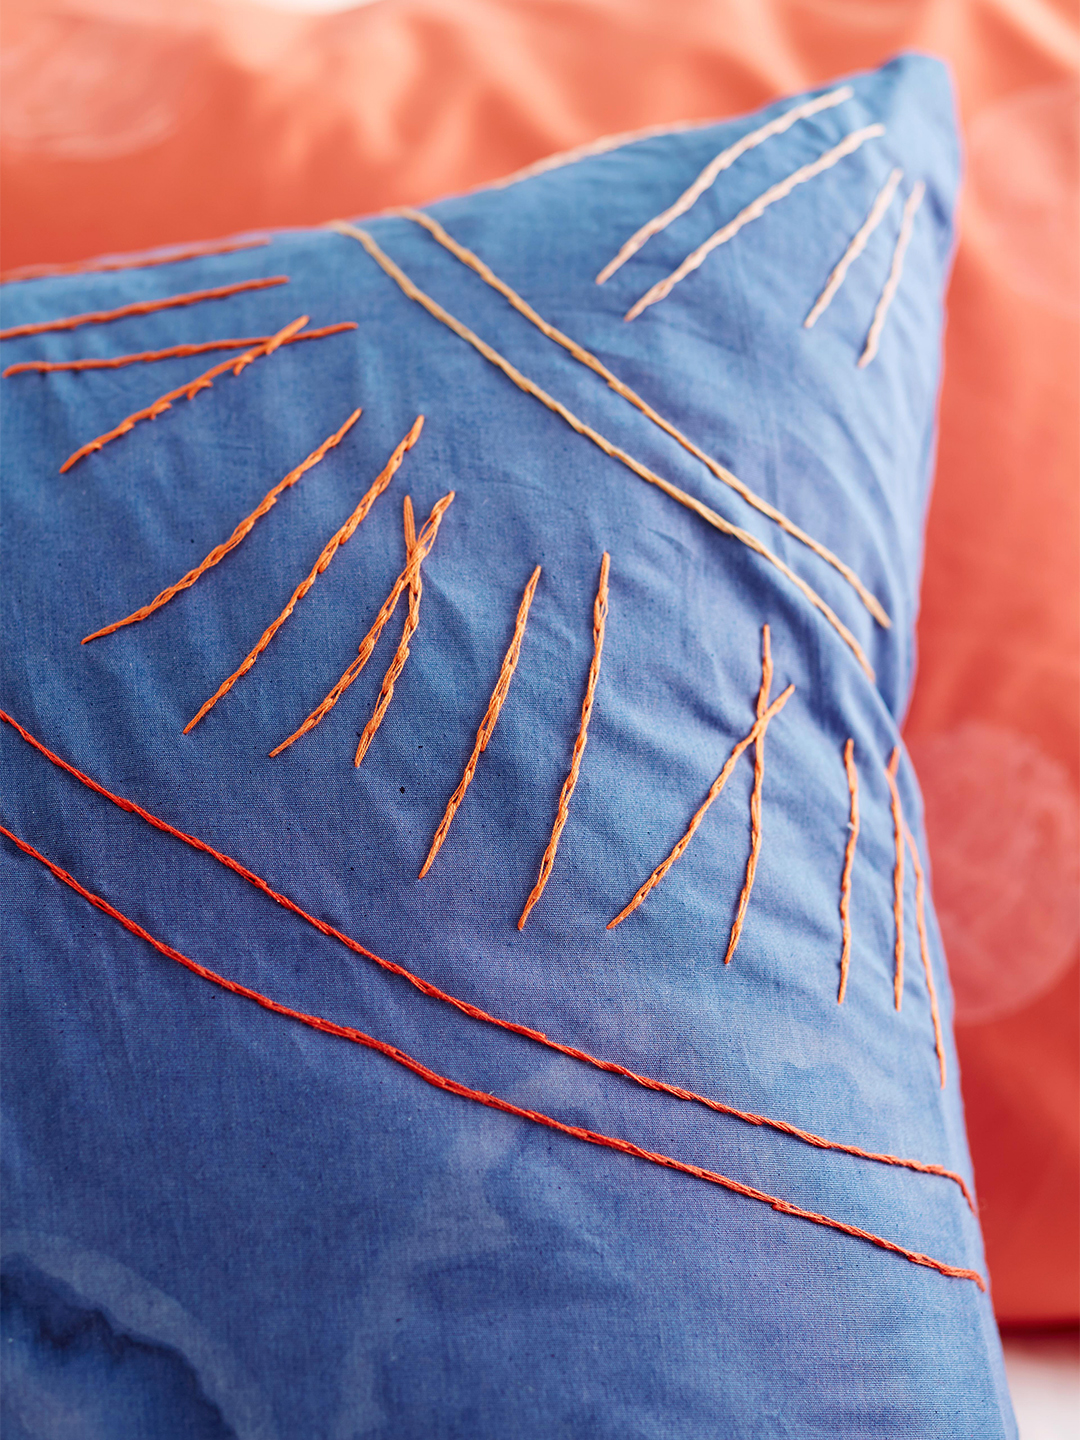 blue pillow with orange stitching